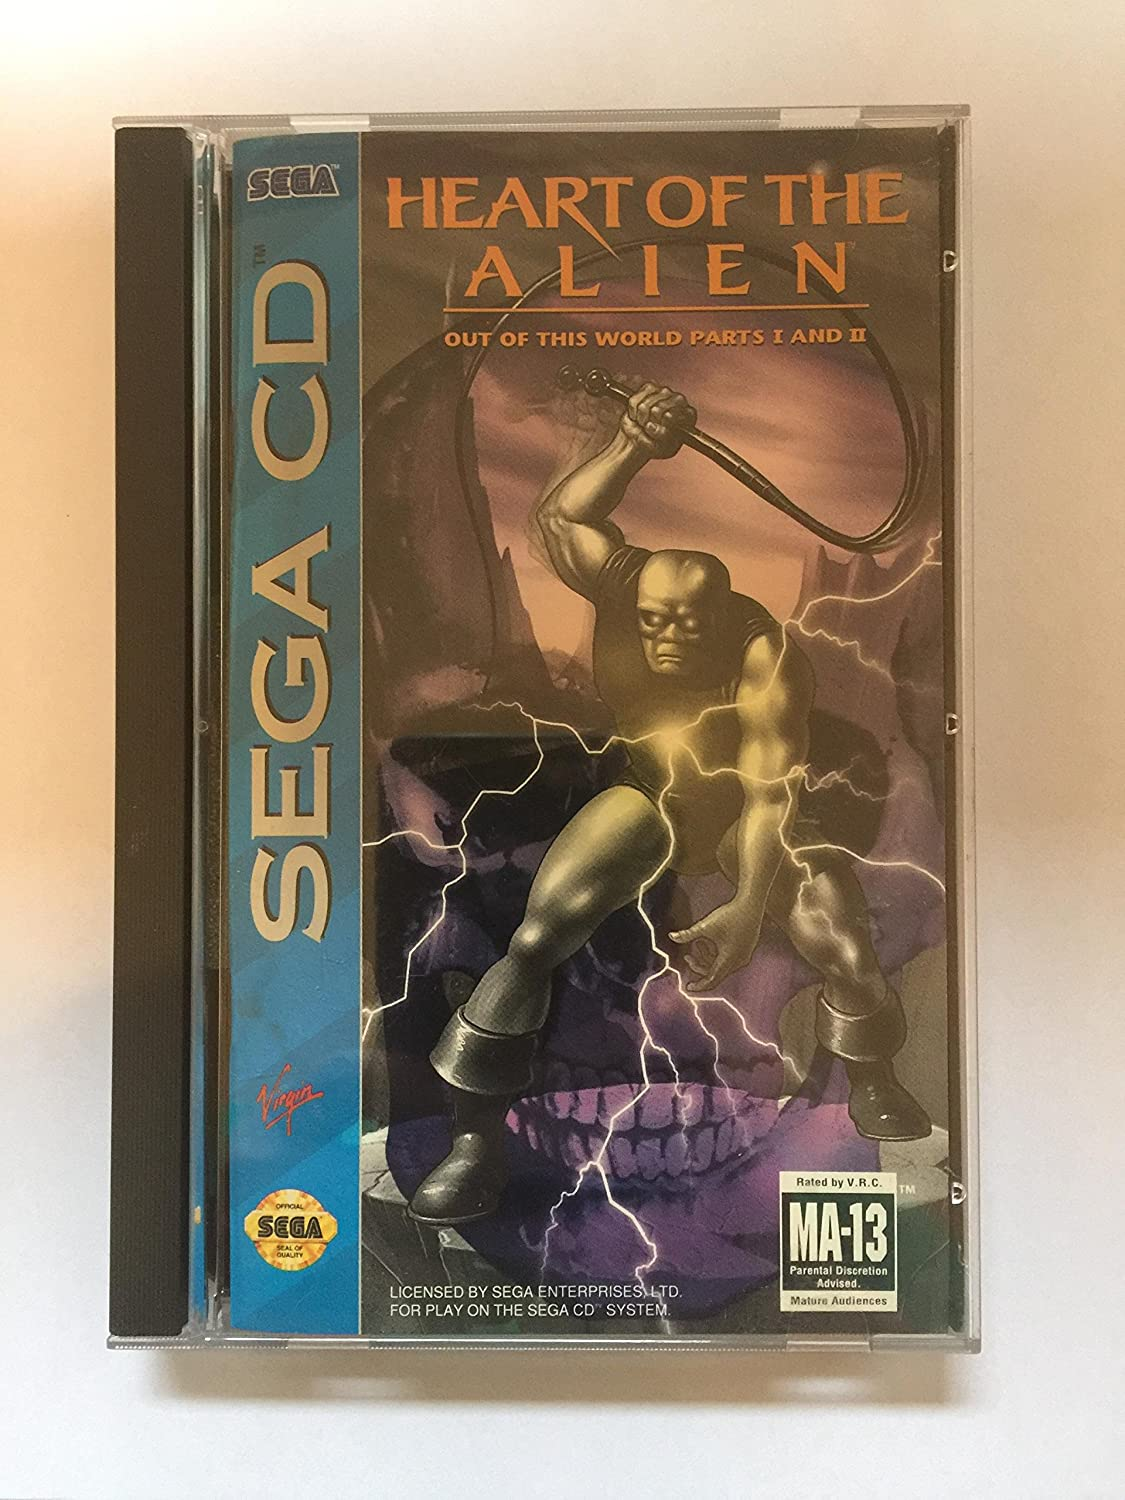 Heart Of The Alien - Out Of This World Parts 1 & 2 (Sega CD)